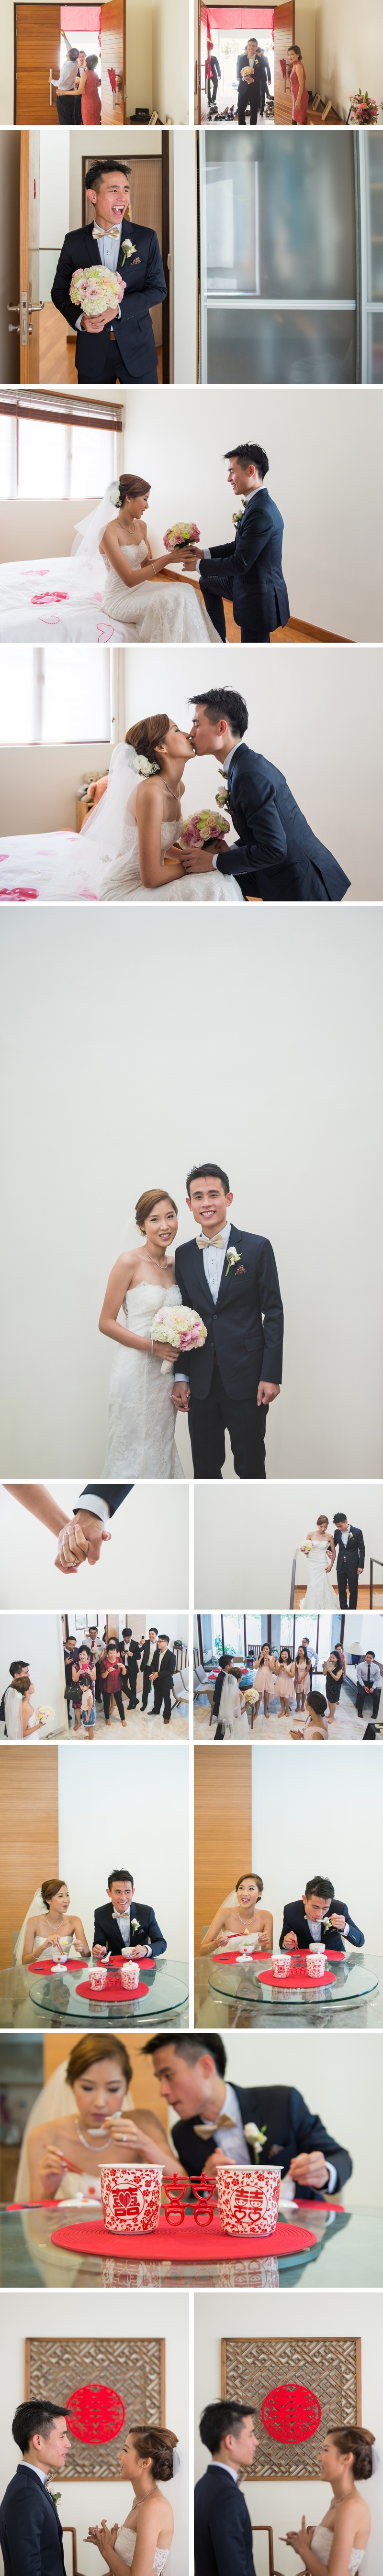 James&Yujia_Wedding_Day_Alvinadeline_Photography07